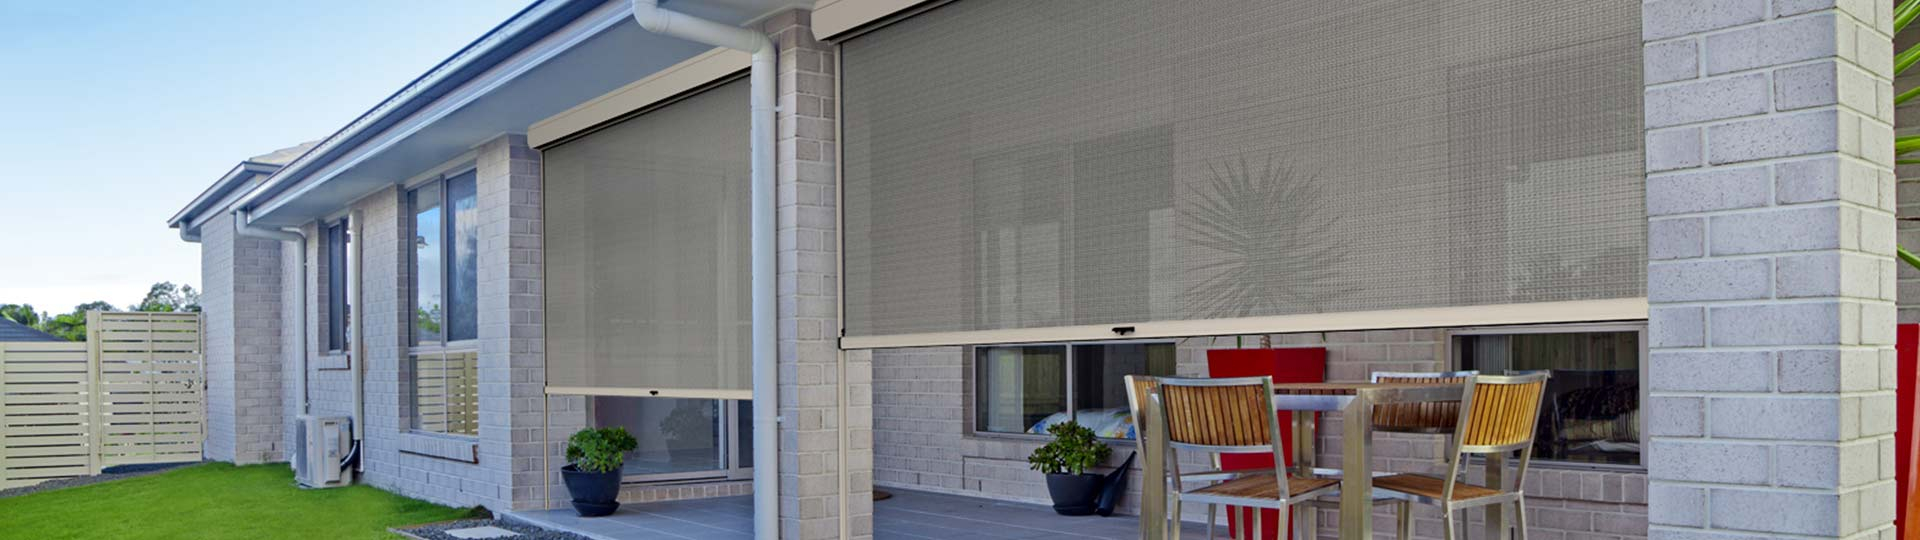 Outdoor Blinds Ziptrak Blinds Indoor Blinds Awnings for size 1920 X 540